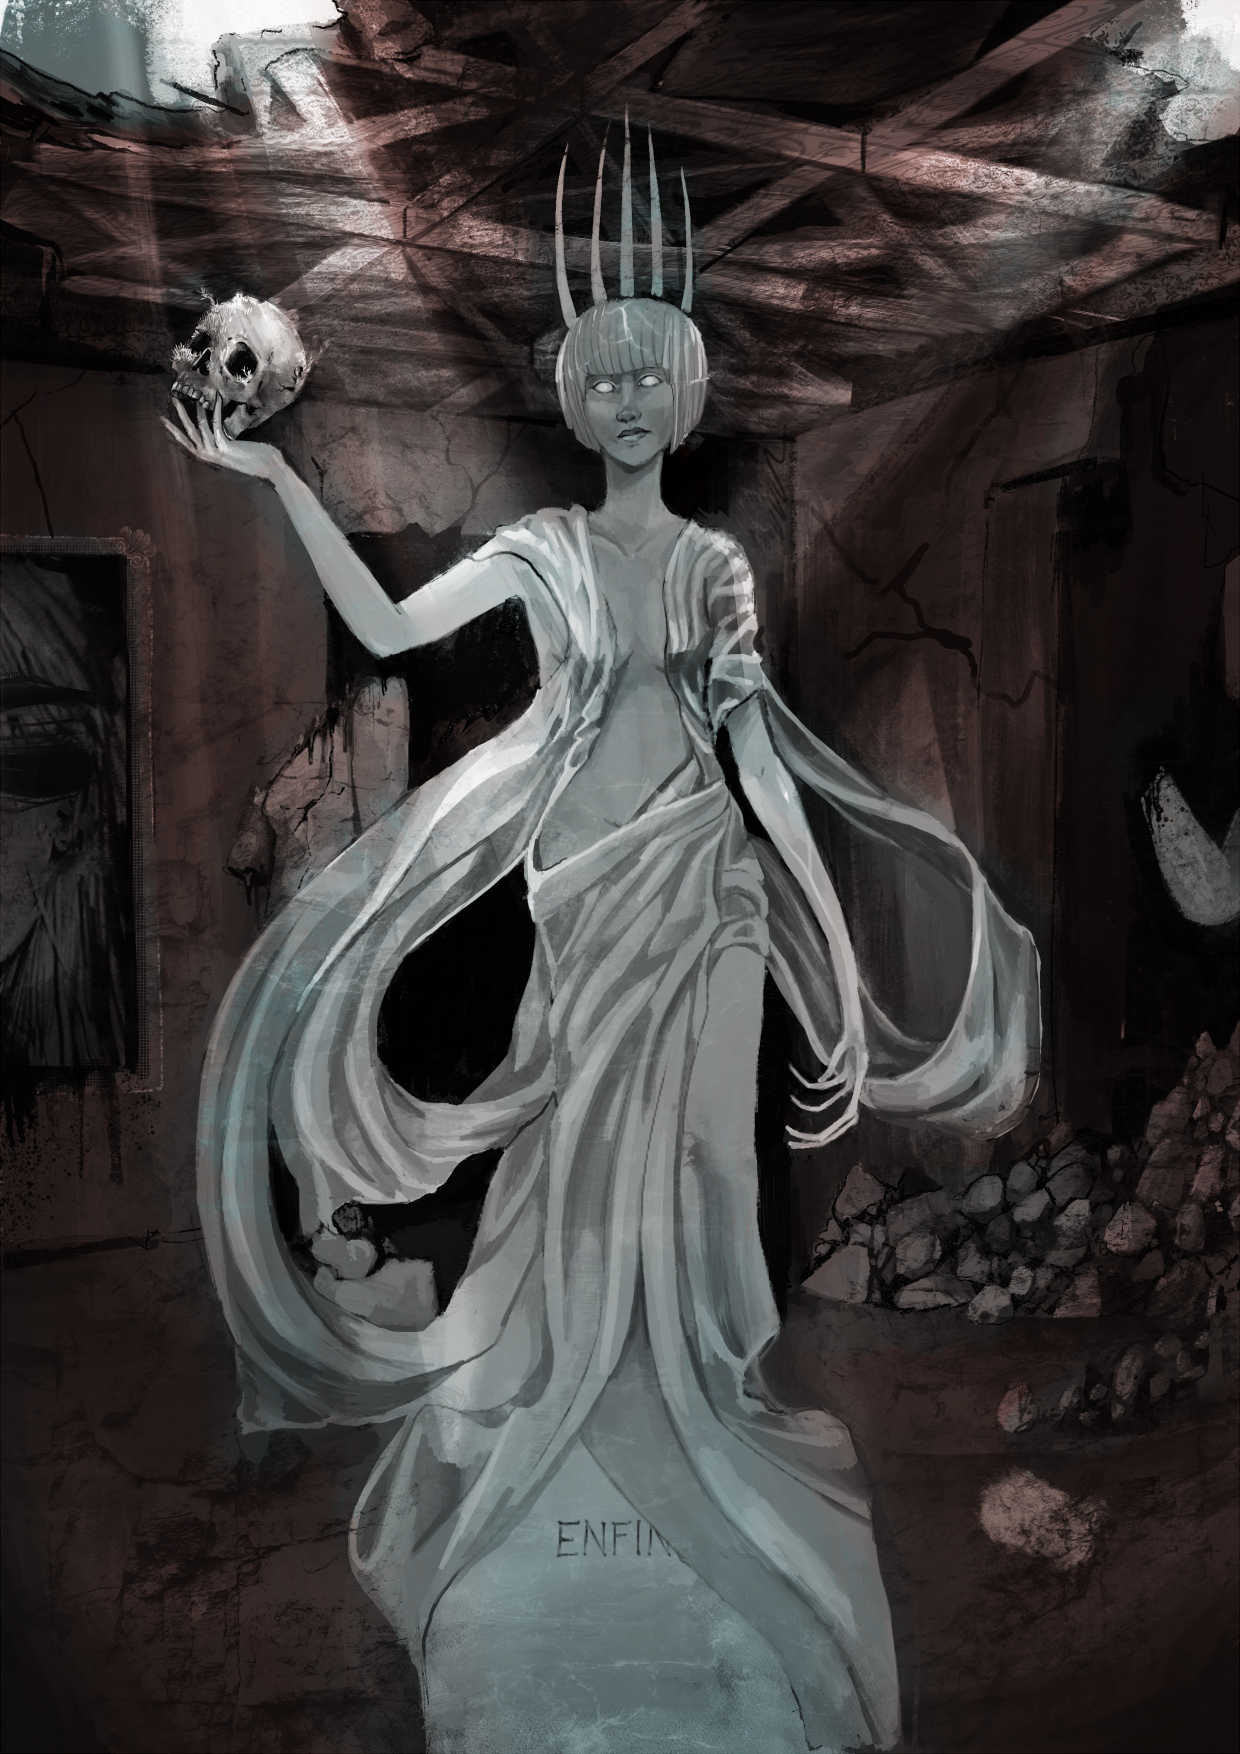 She of Ivory Blood, artist rendition